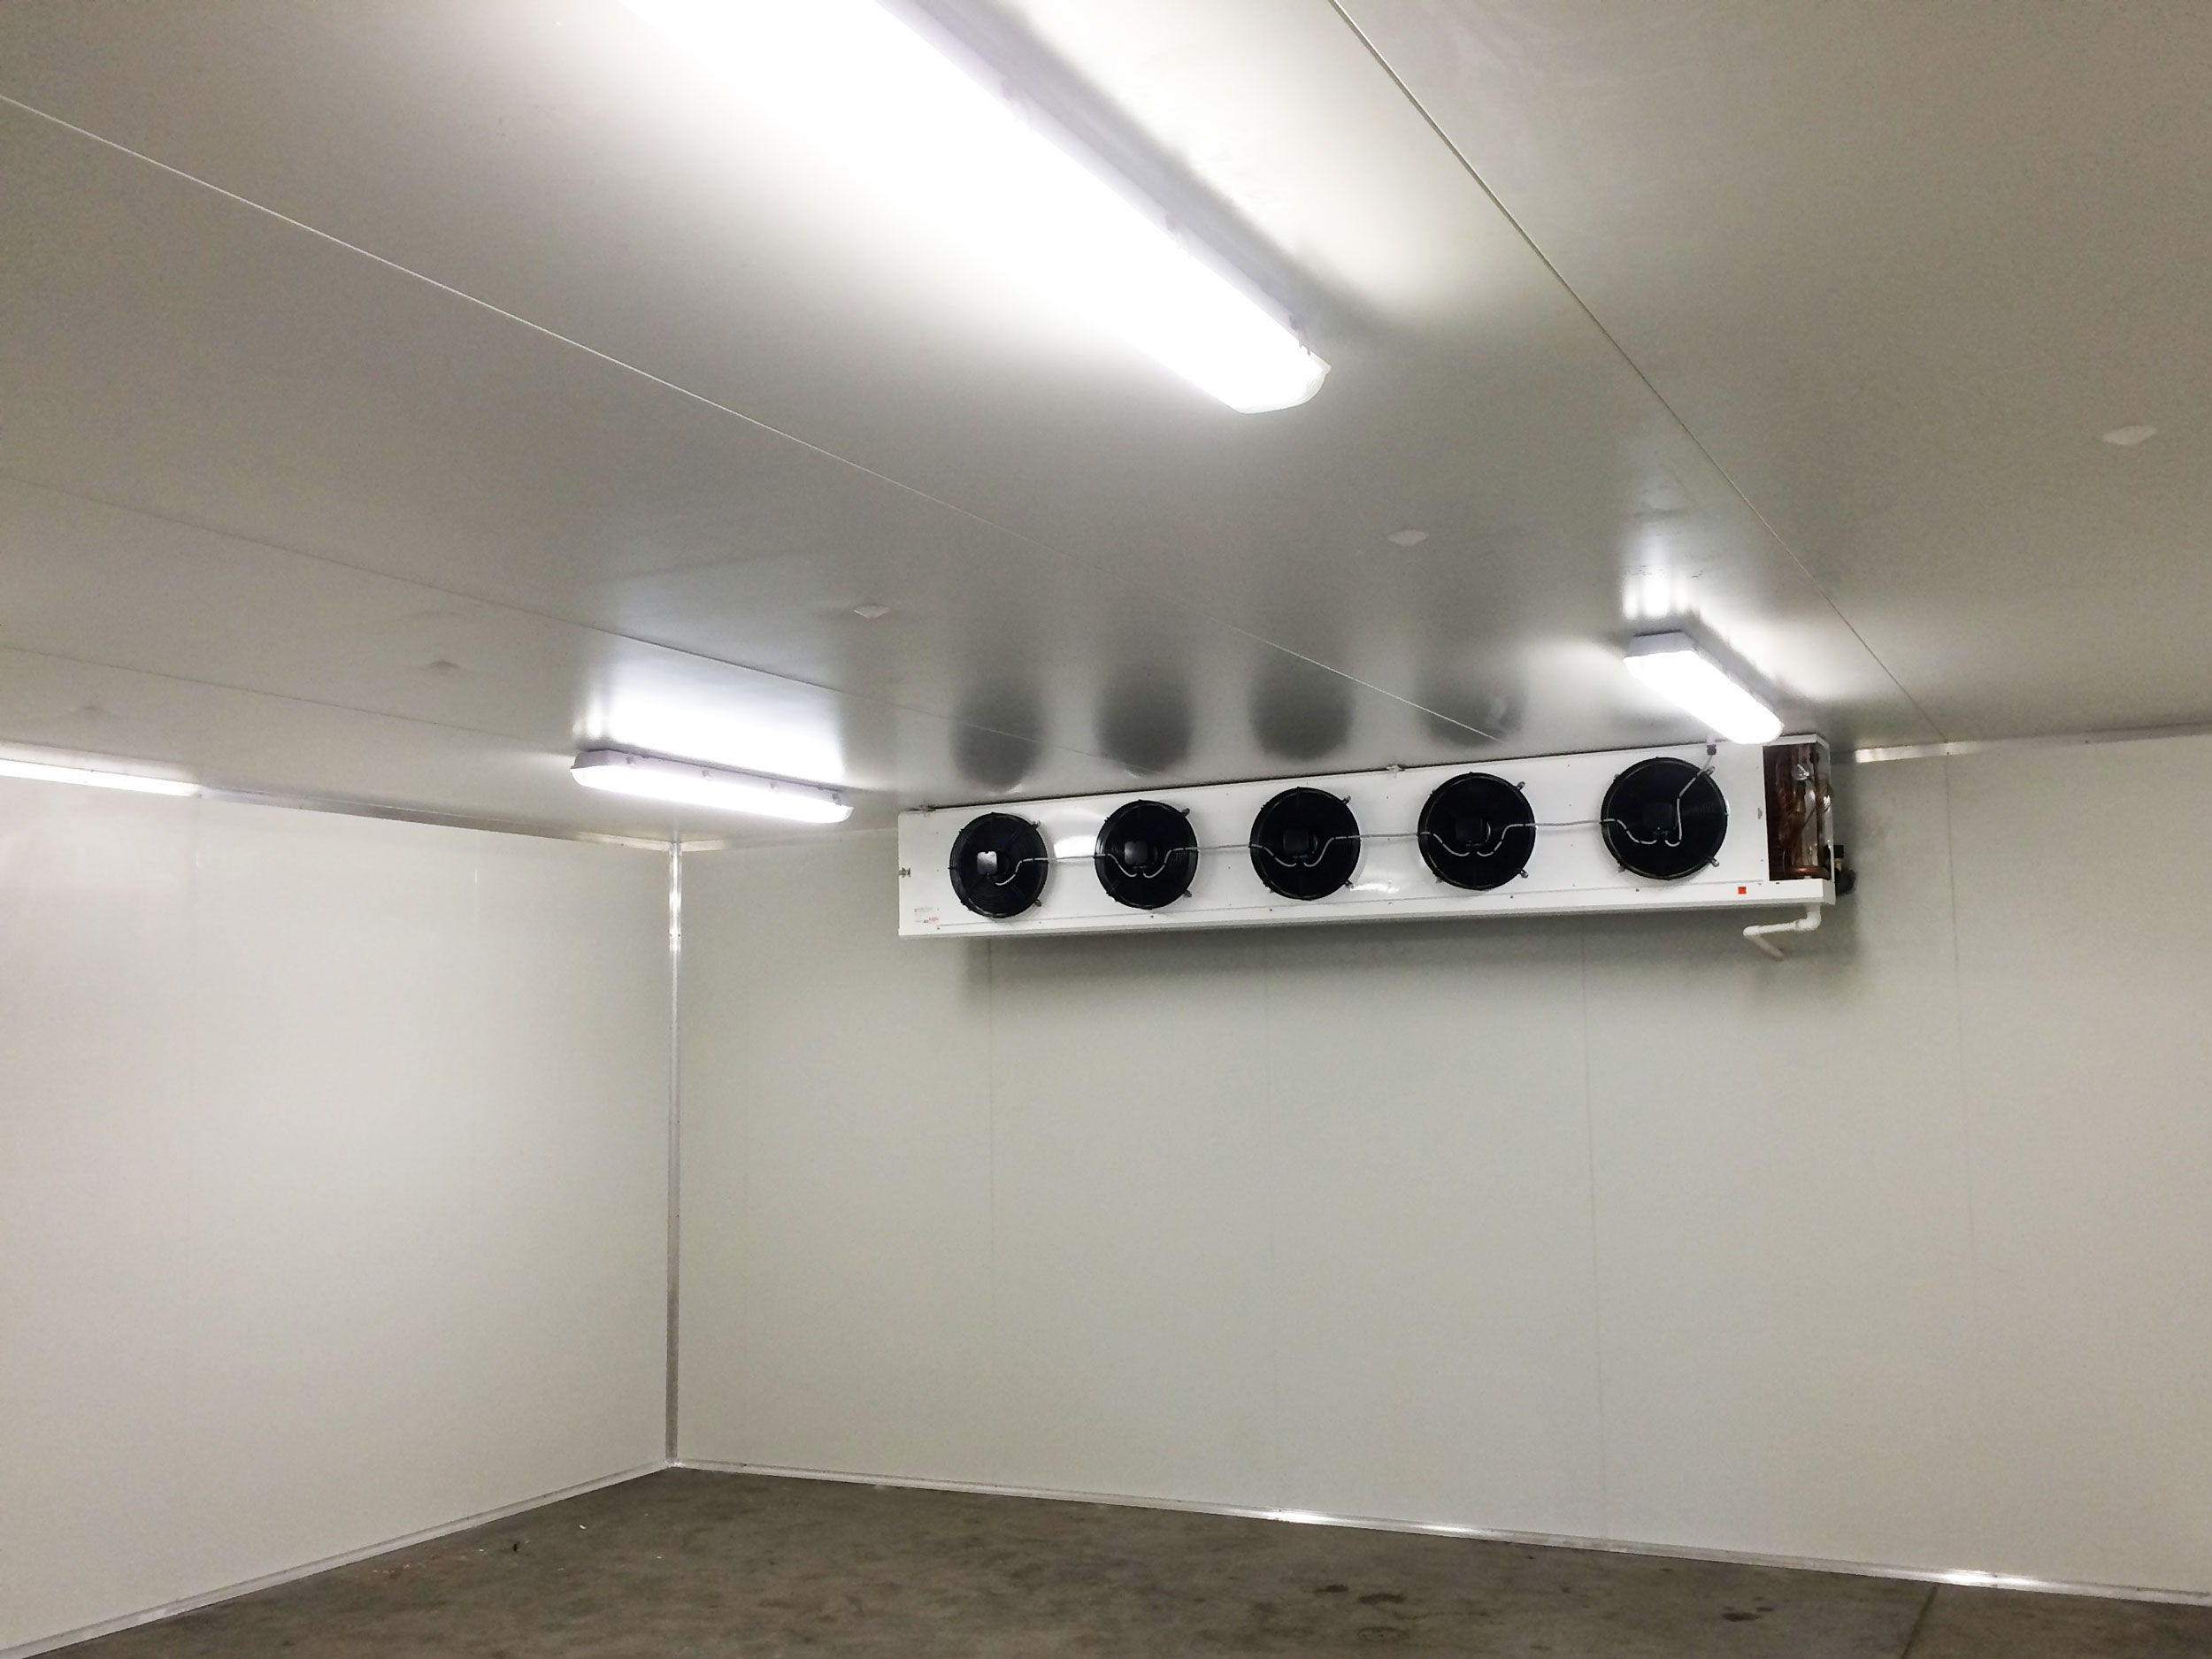 inside a commercial air conditioning unit with fans